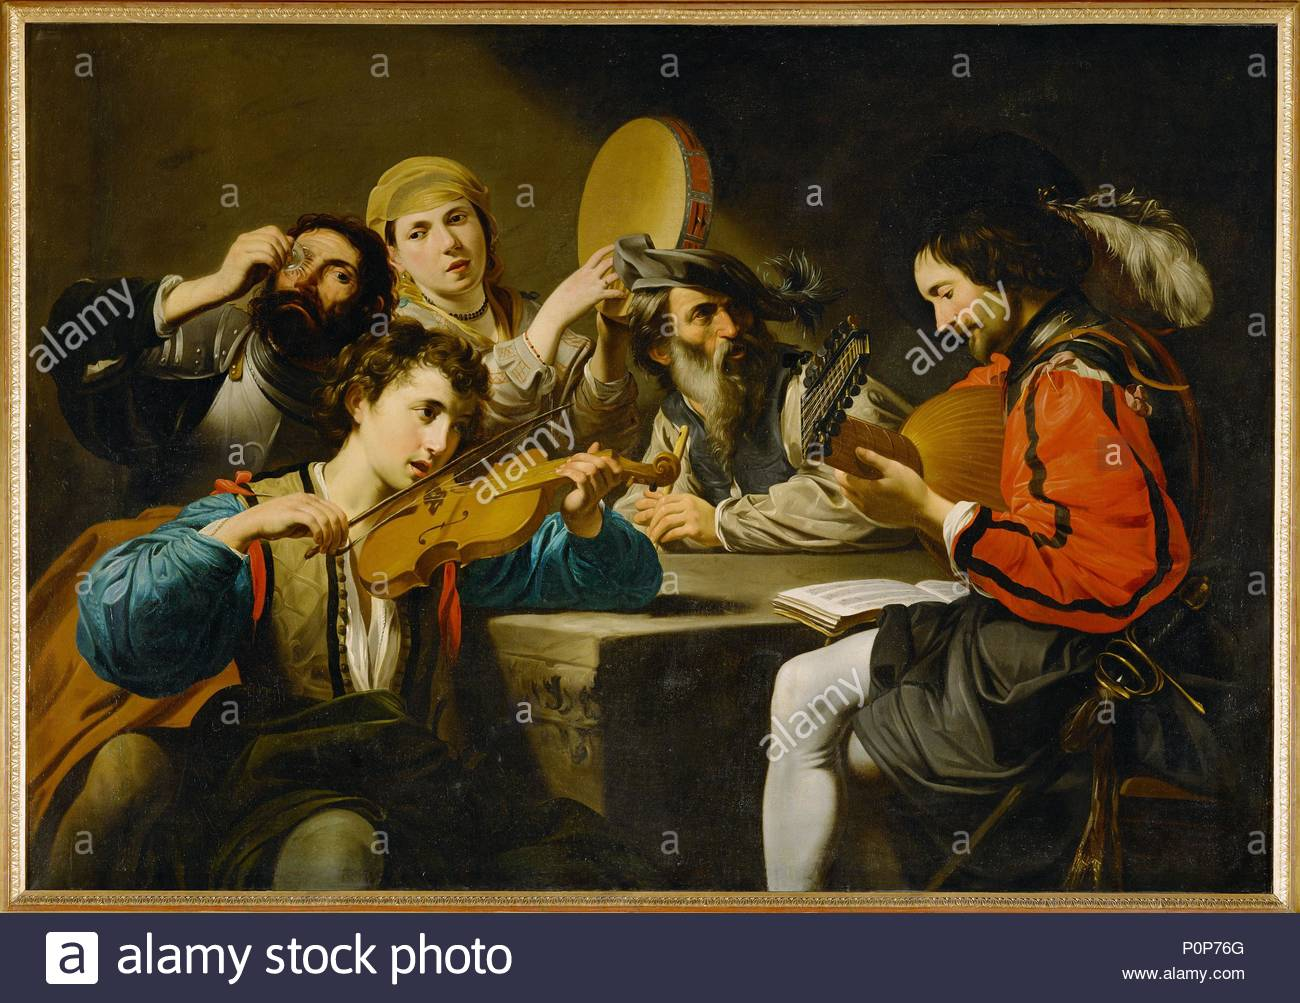 Concert with four persons and one drinker. Canvas,117 x 186 cm Inv. GK 704. Author: Valentin de Boulogne (1591-1632). Location: Hessisches Landesmuseum, Darmstadt, Germany. - Stock Image